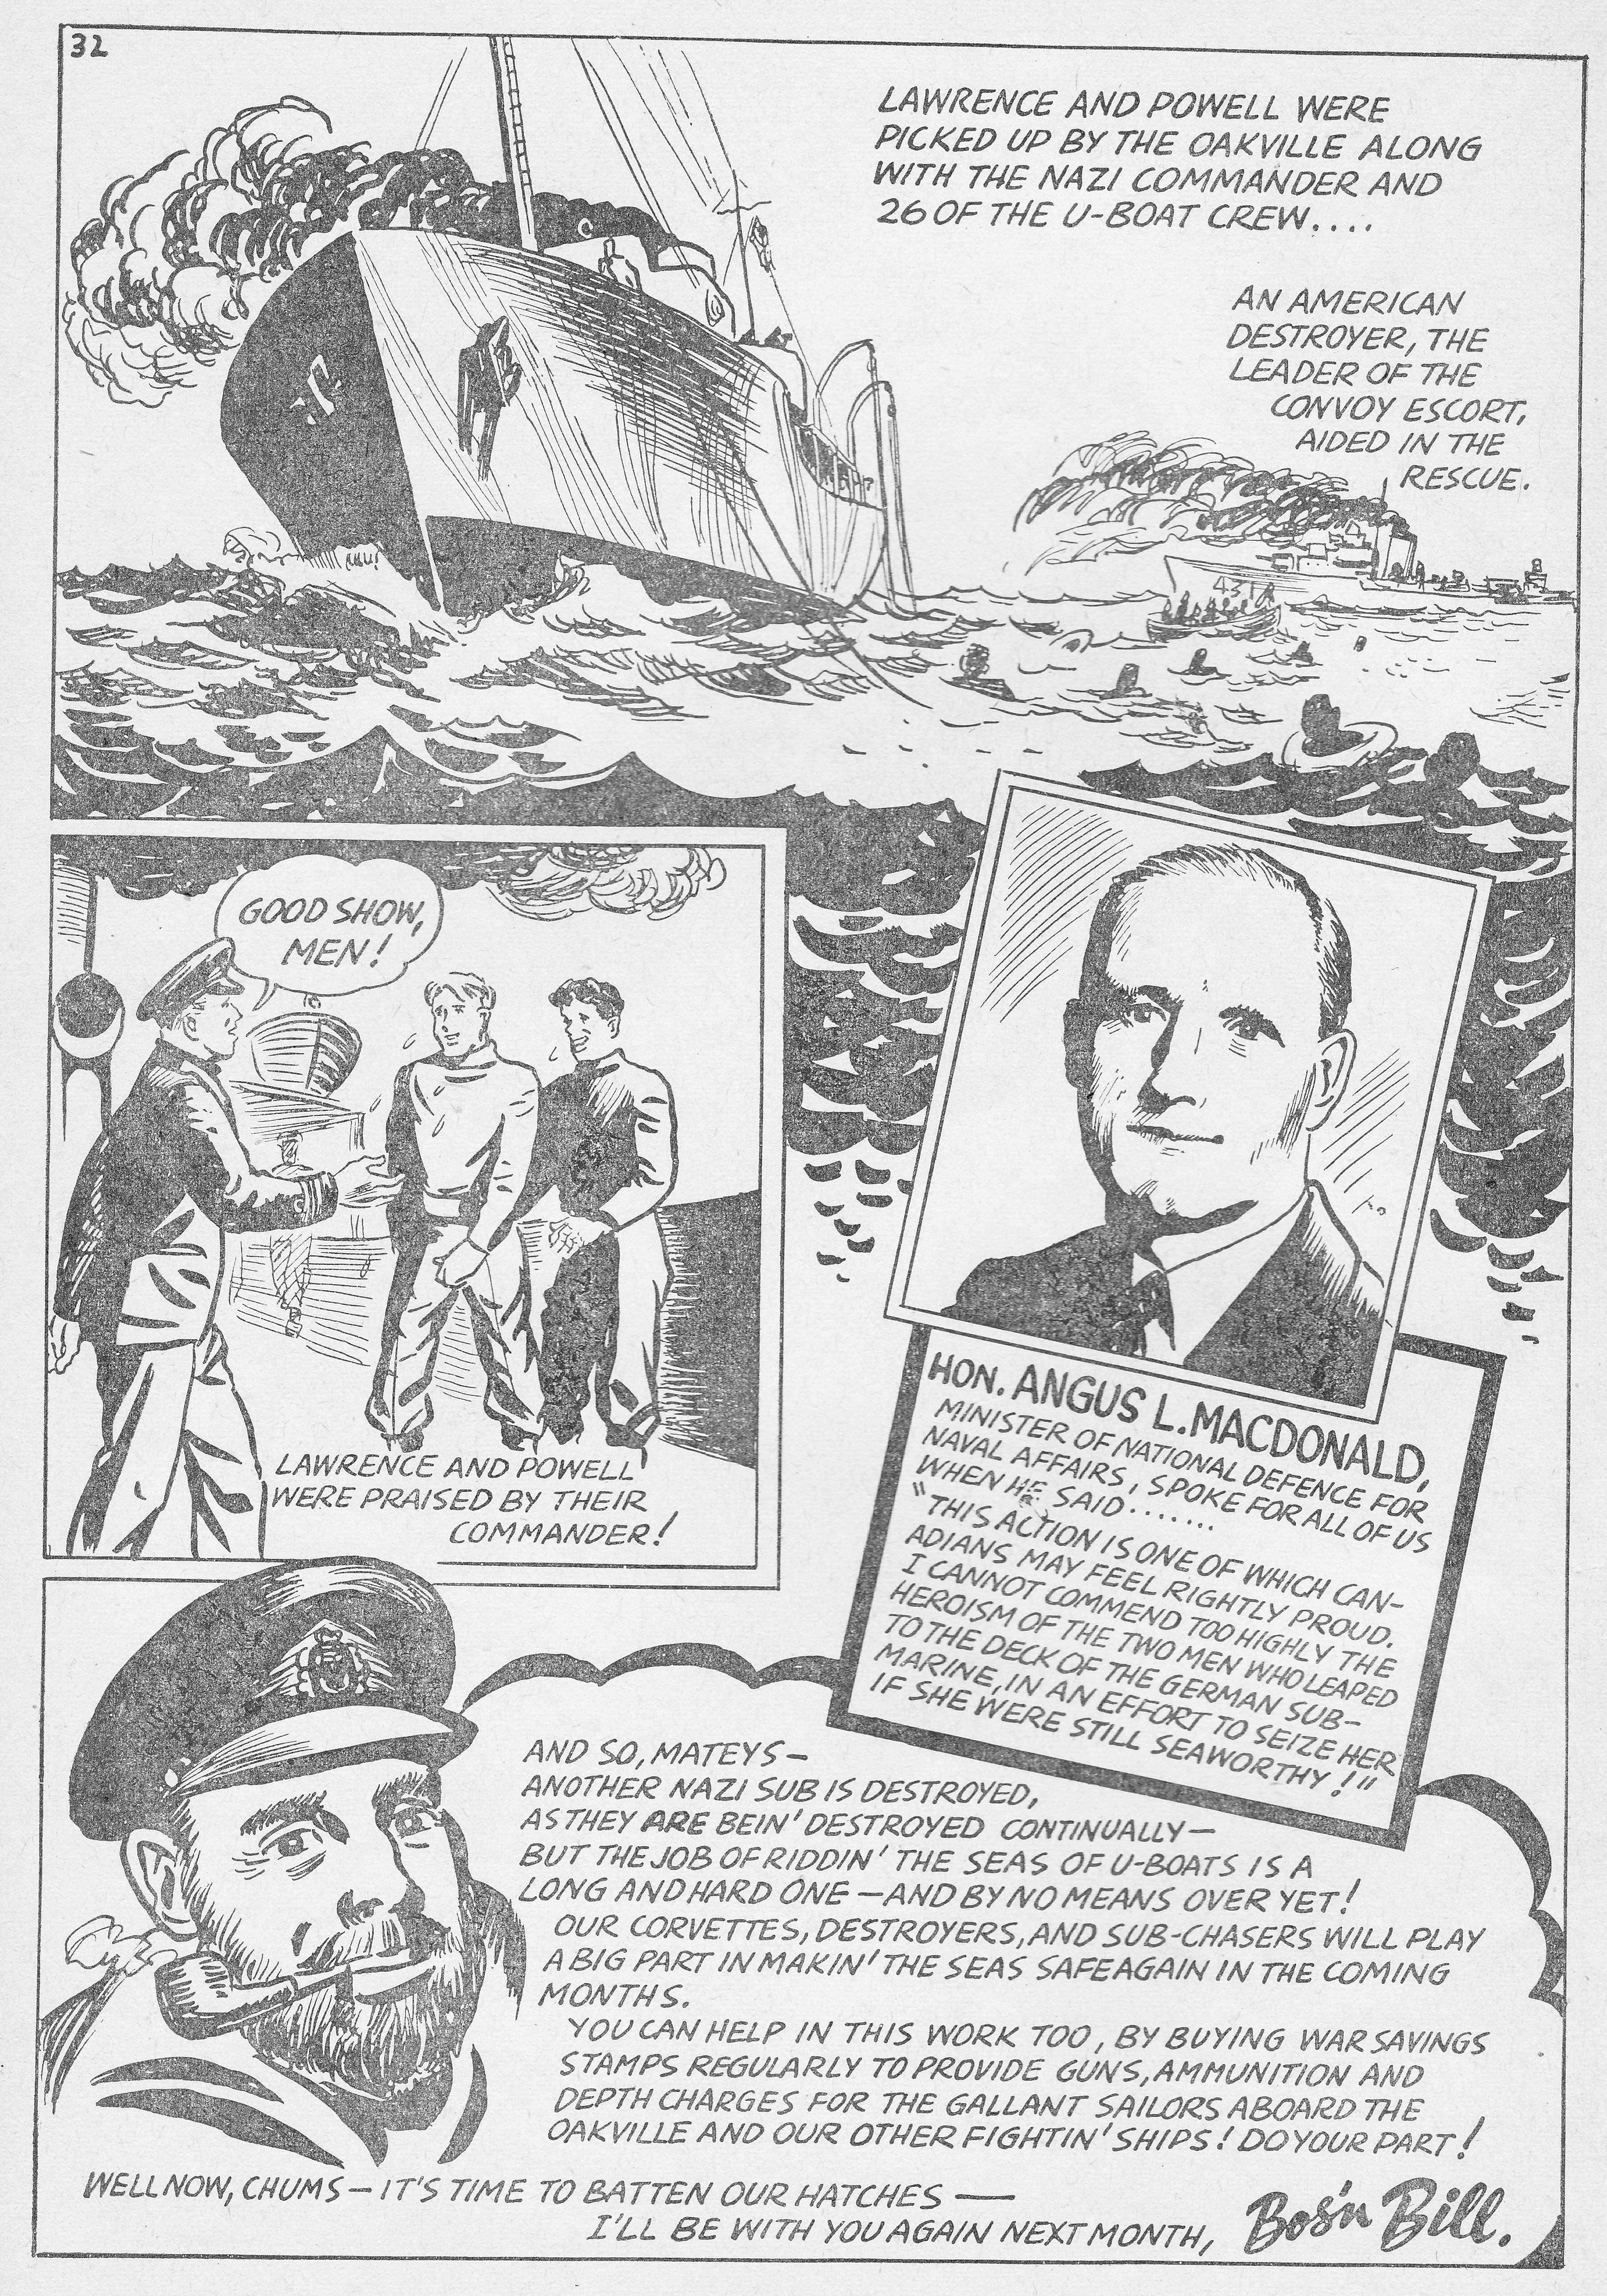 C:\Users\Robert\Documents\CARTOONING ILLUSTRATION ANIMATION\IMAGE CARTOON\IMAGE CARTOON B\BOS'N BILL, Canadian Heroes, Apr. 1943, 32.jpg